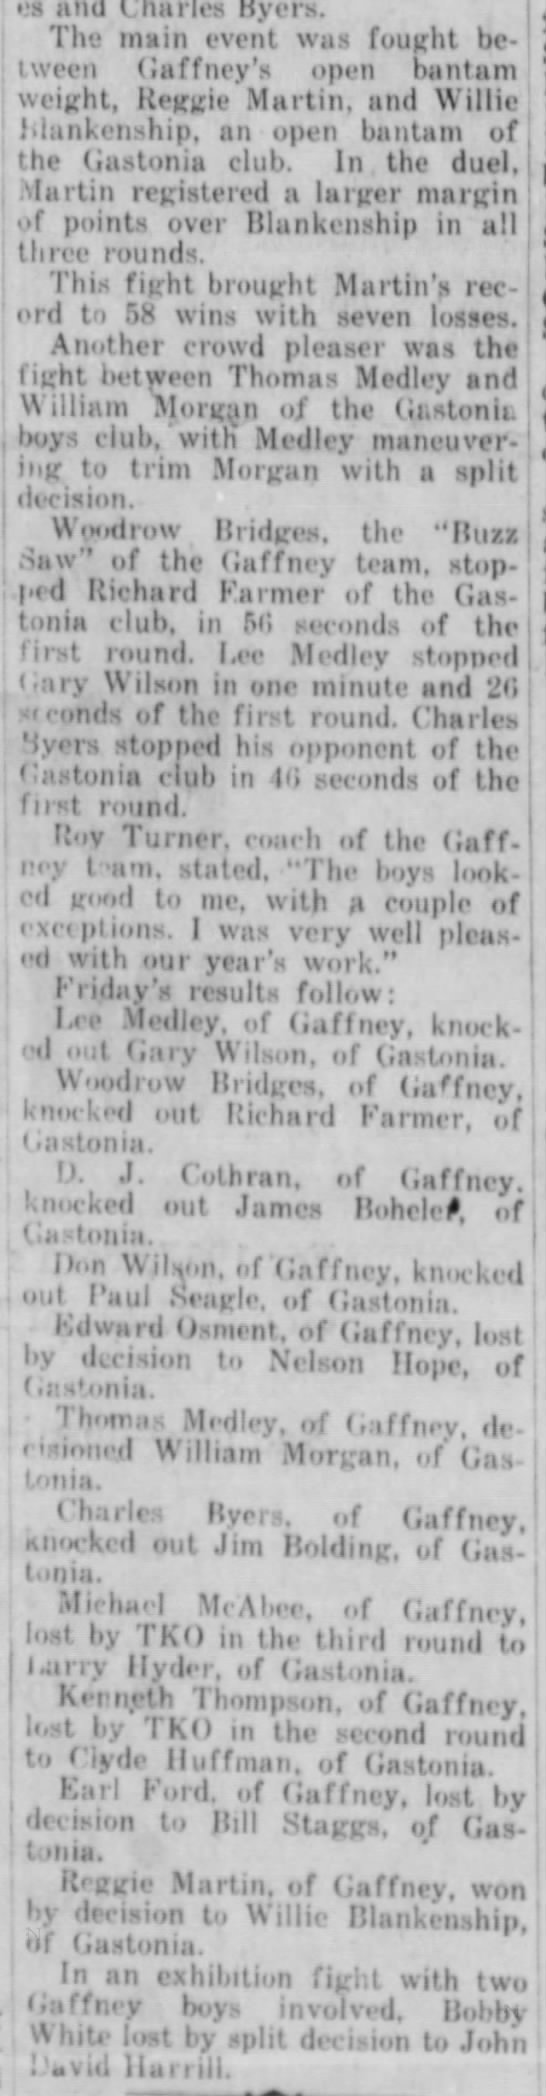 Feb 26, 1957 Gaffney boxers win at Gastonia cont.